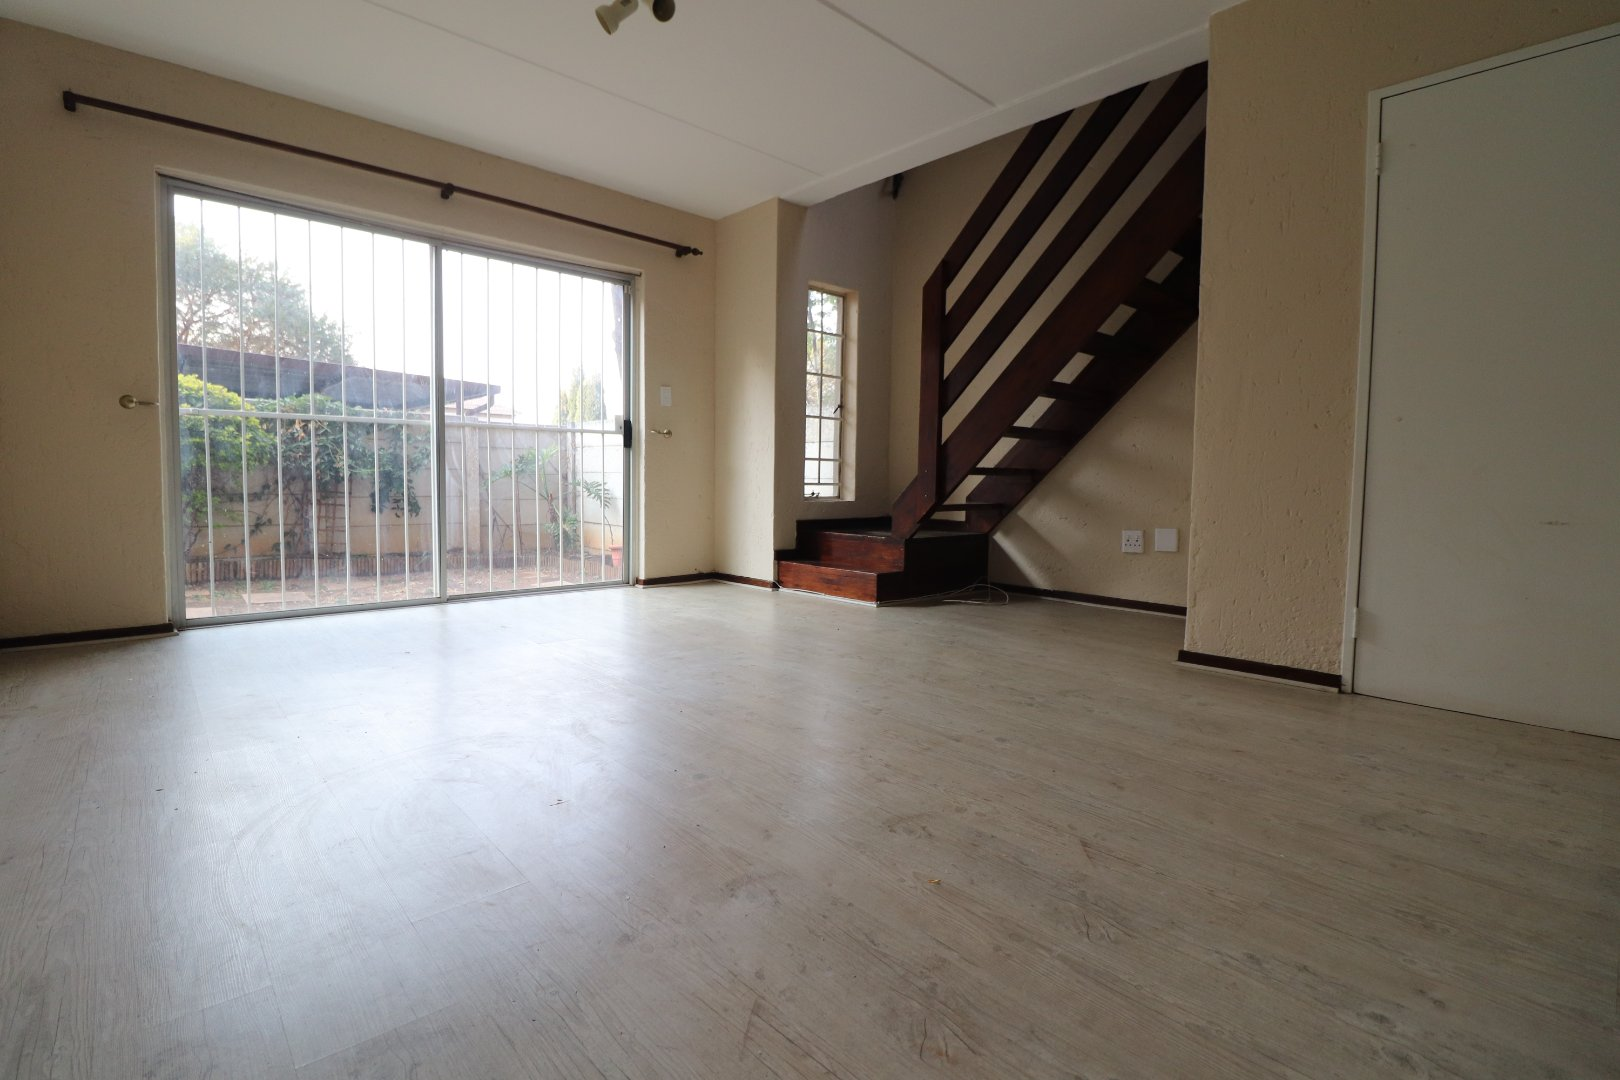 ERA SA | 2 Bedroom Flat / Apartment To Rent In North ...